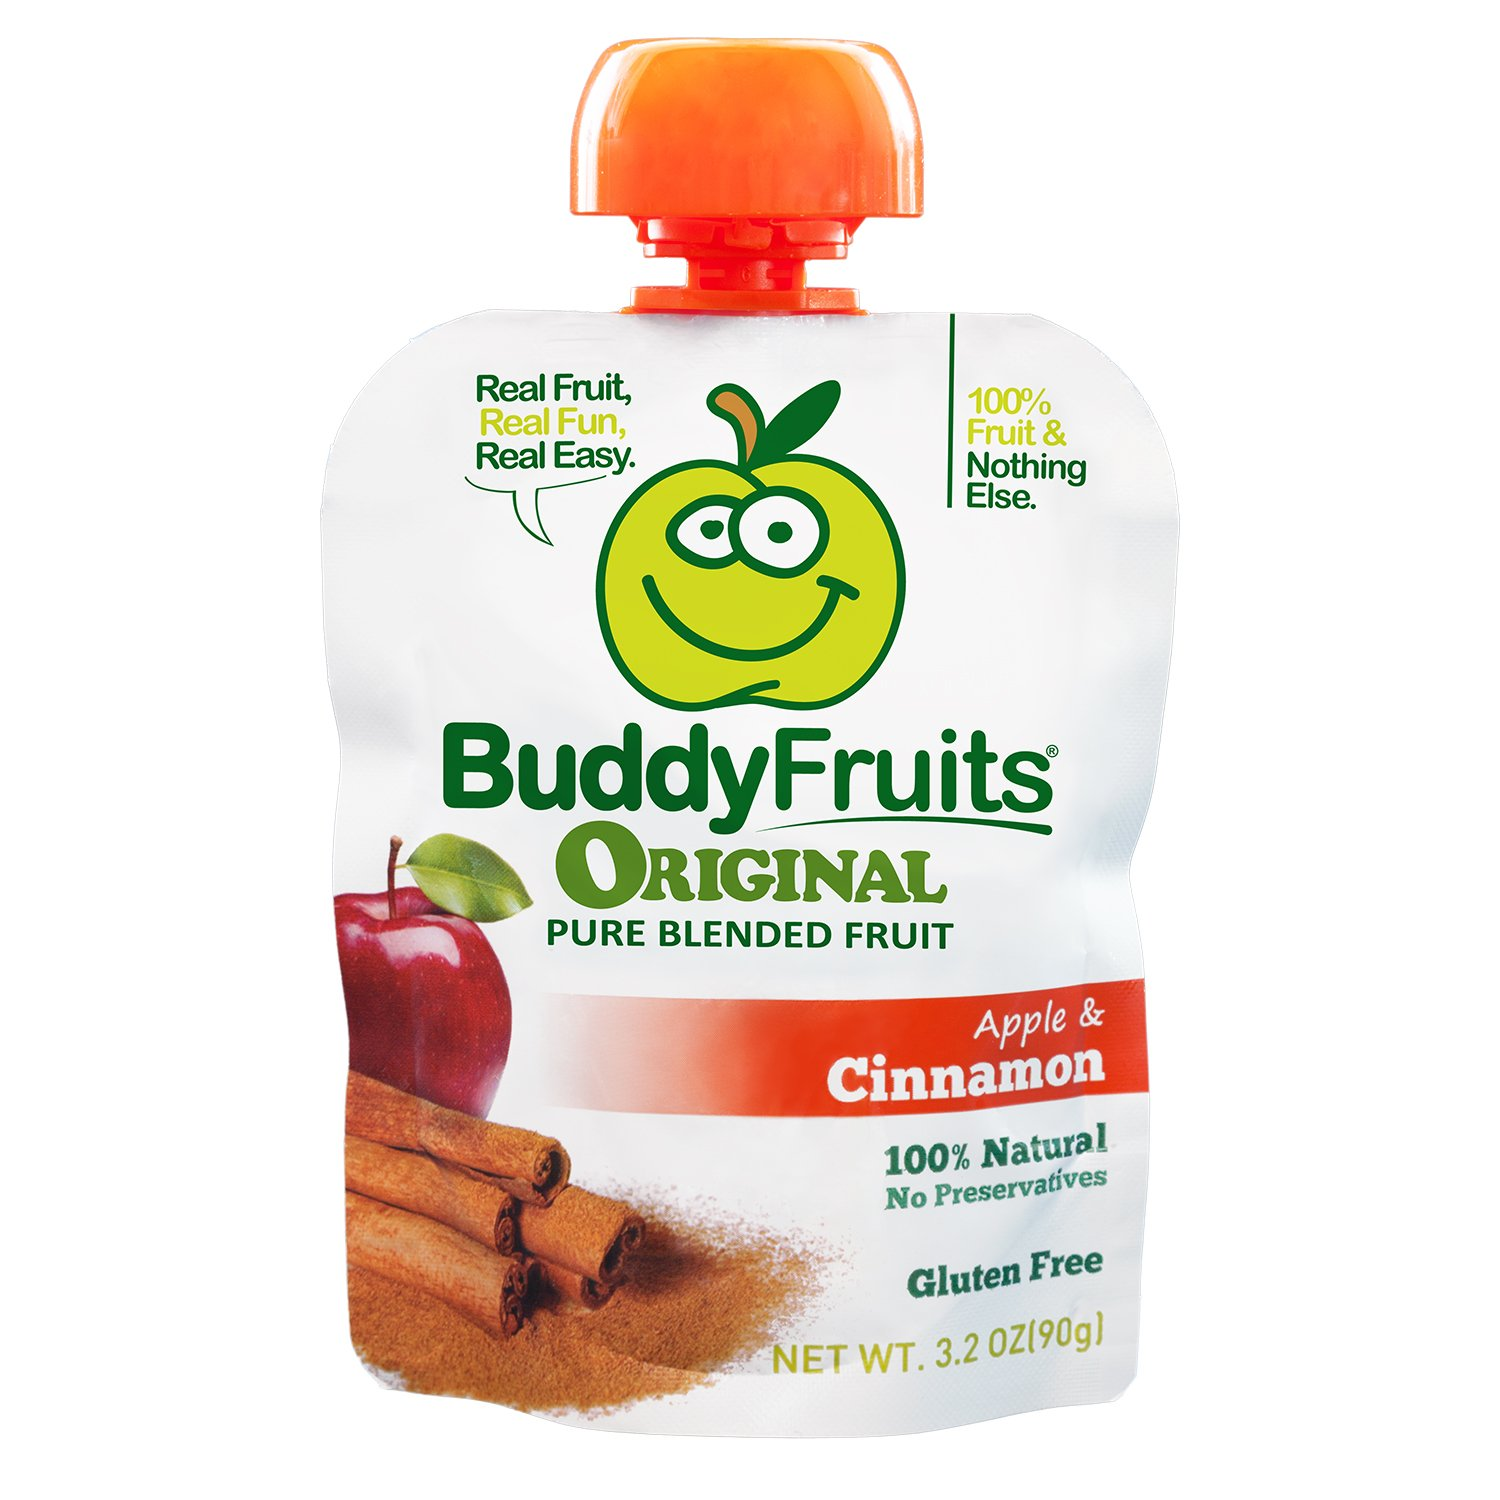 Buddy Fruits Pure Blended Fruit To Go, Apple and Cinnamon, 3.2 Ounce Packages (Pack of 18)